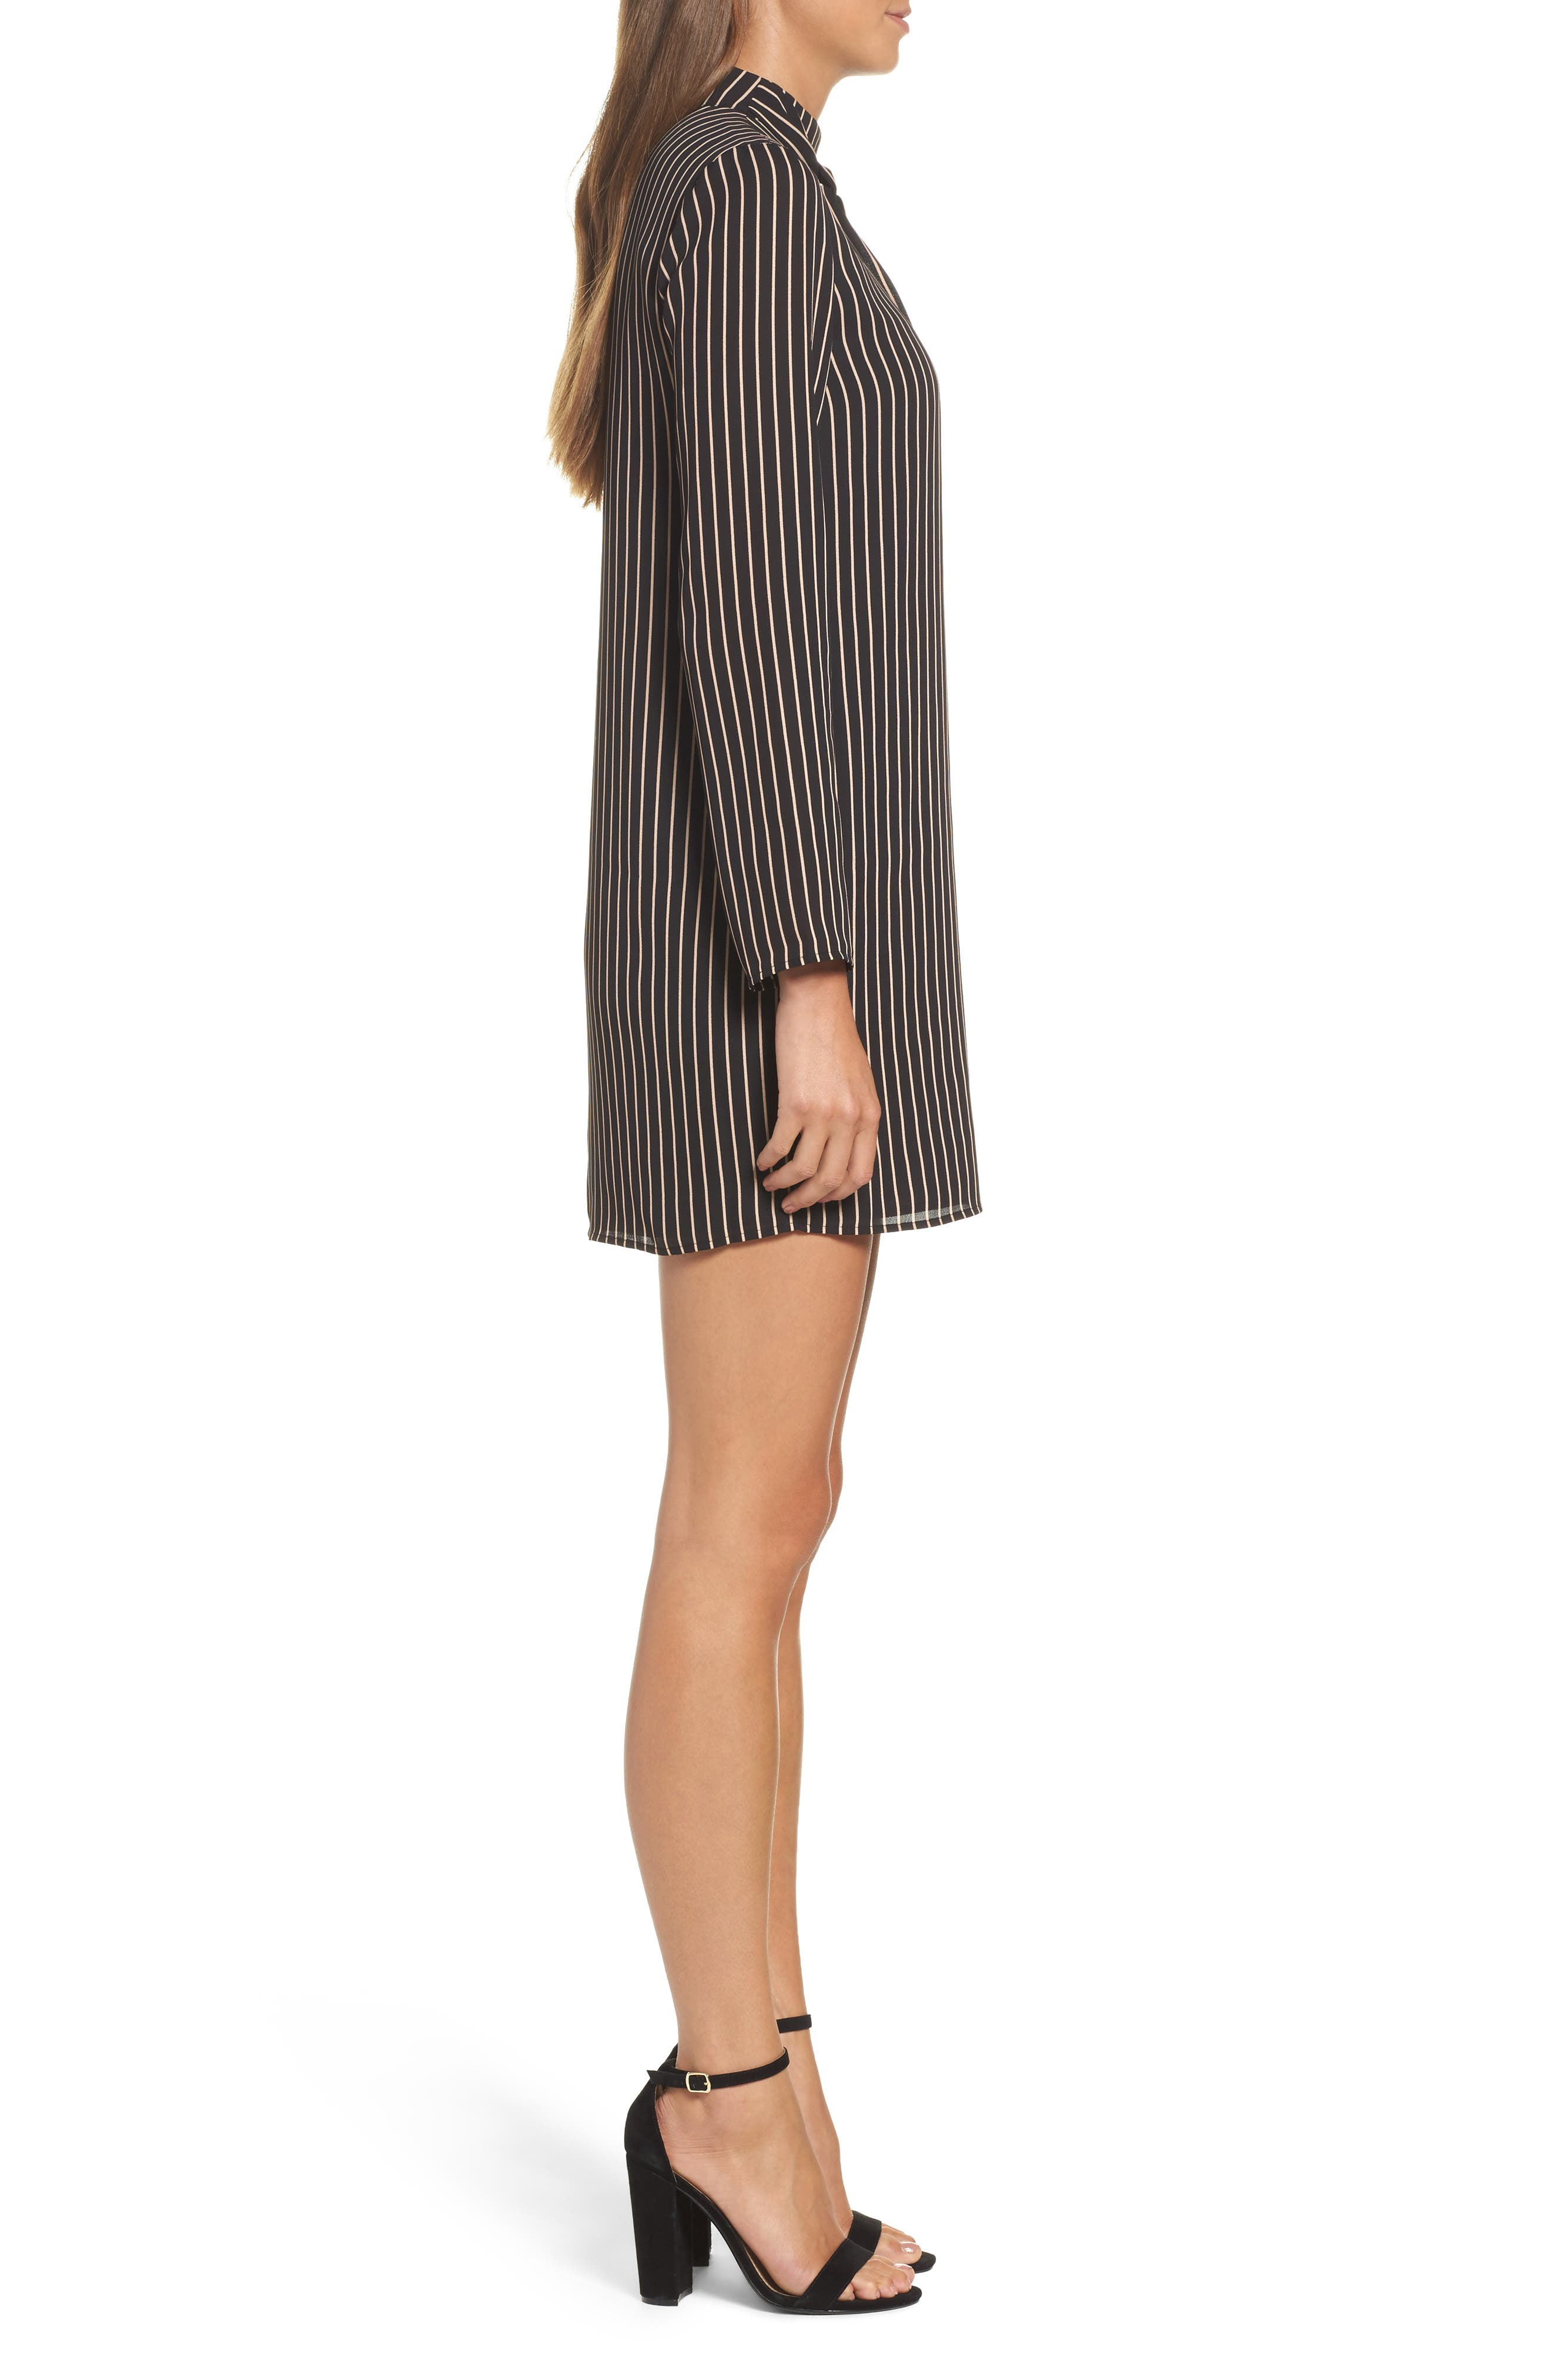 She-E-O Shift Dress,                             Alternate thumbnail 3, color,                             Black/ Tan Stripe